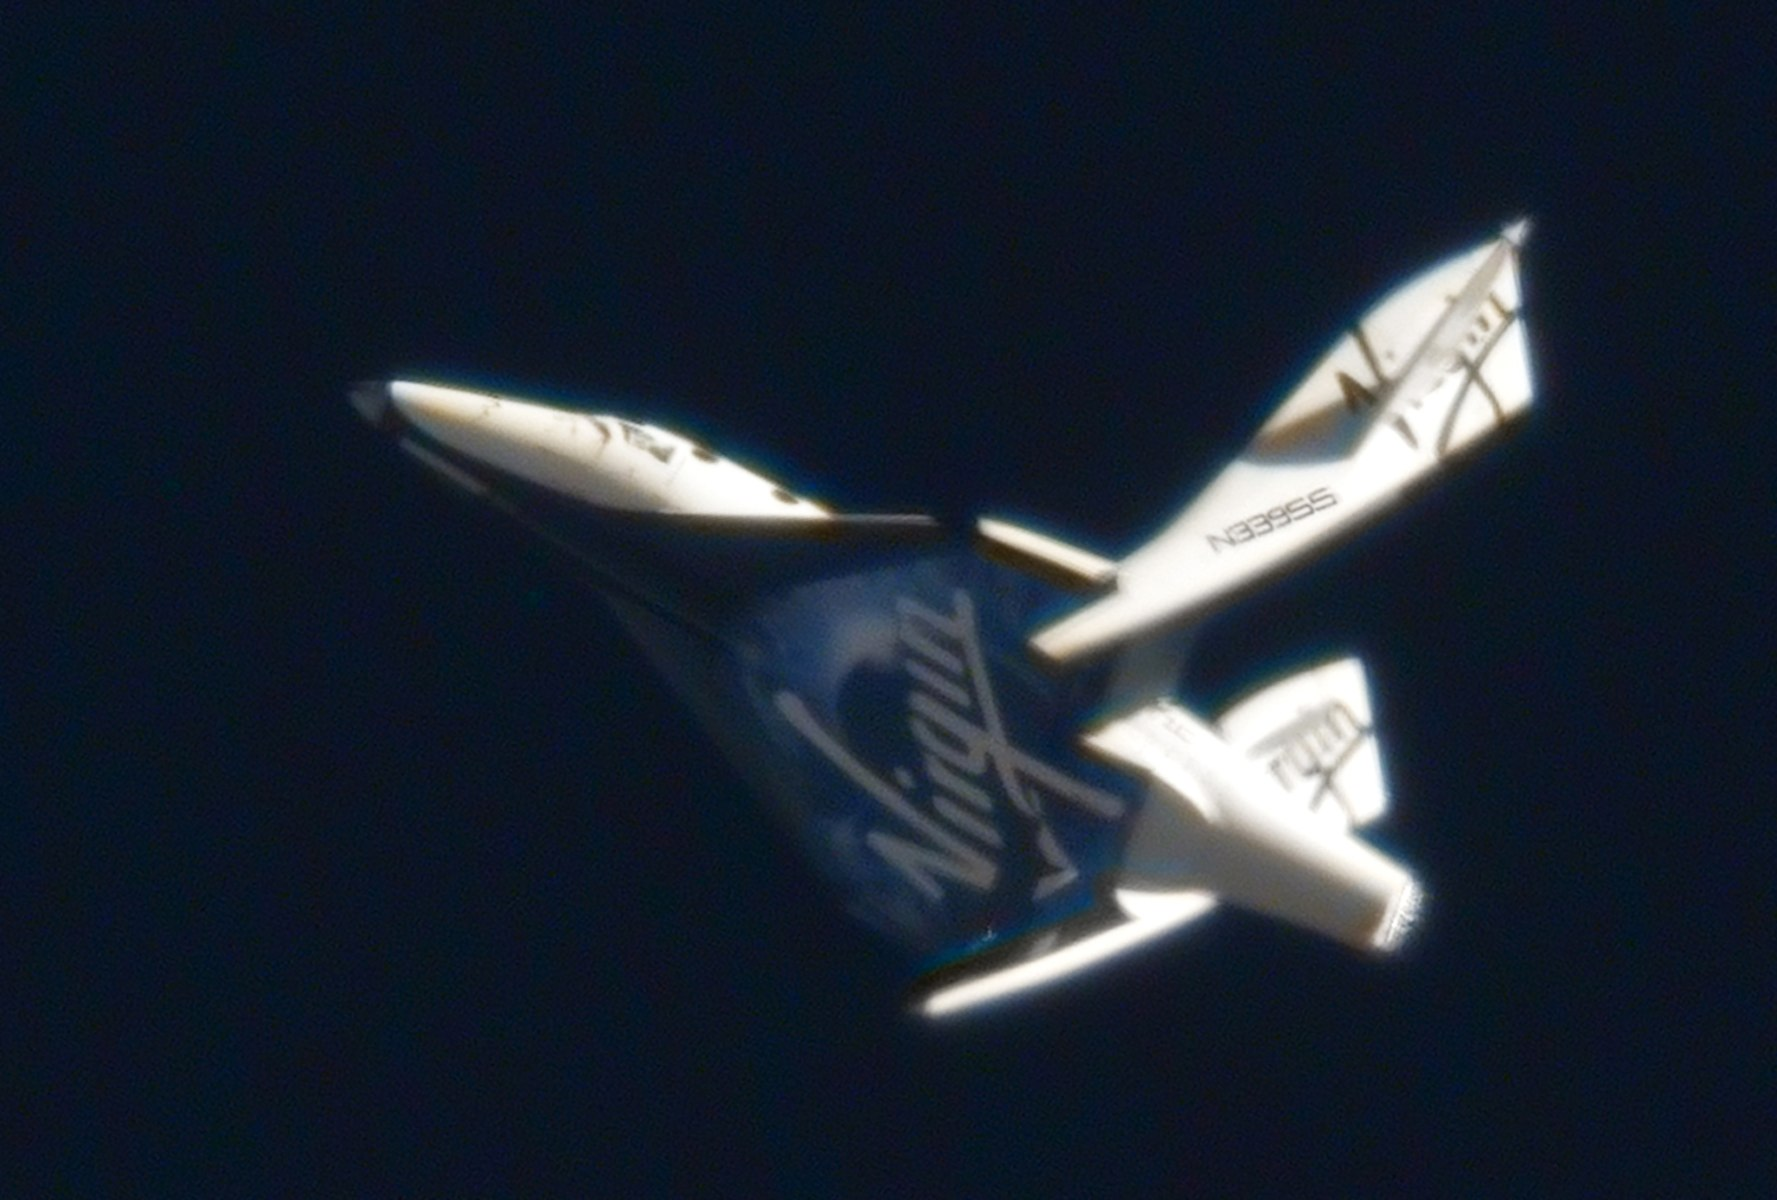 First Feather Flight (FF01) of SpaceShipTwo